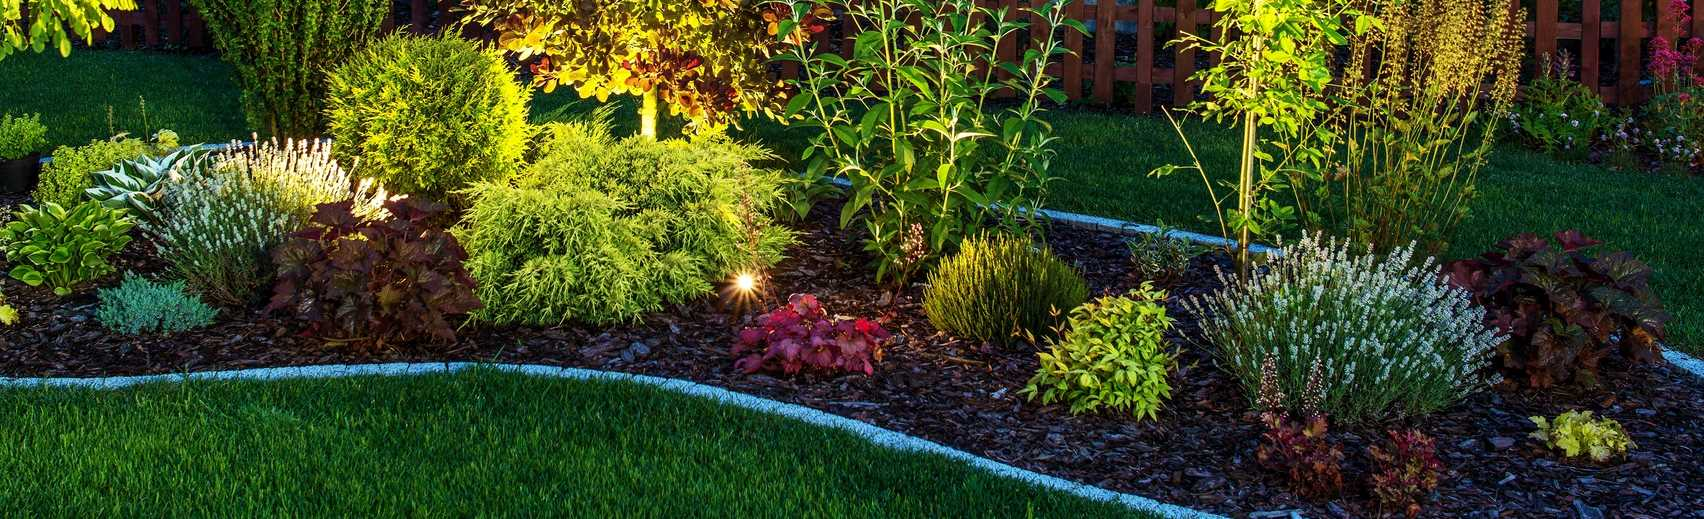 Landscaping Boulders Springfield Mo : Landscape lighting springfield mo gabris landscaping